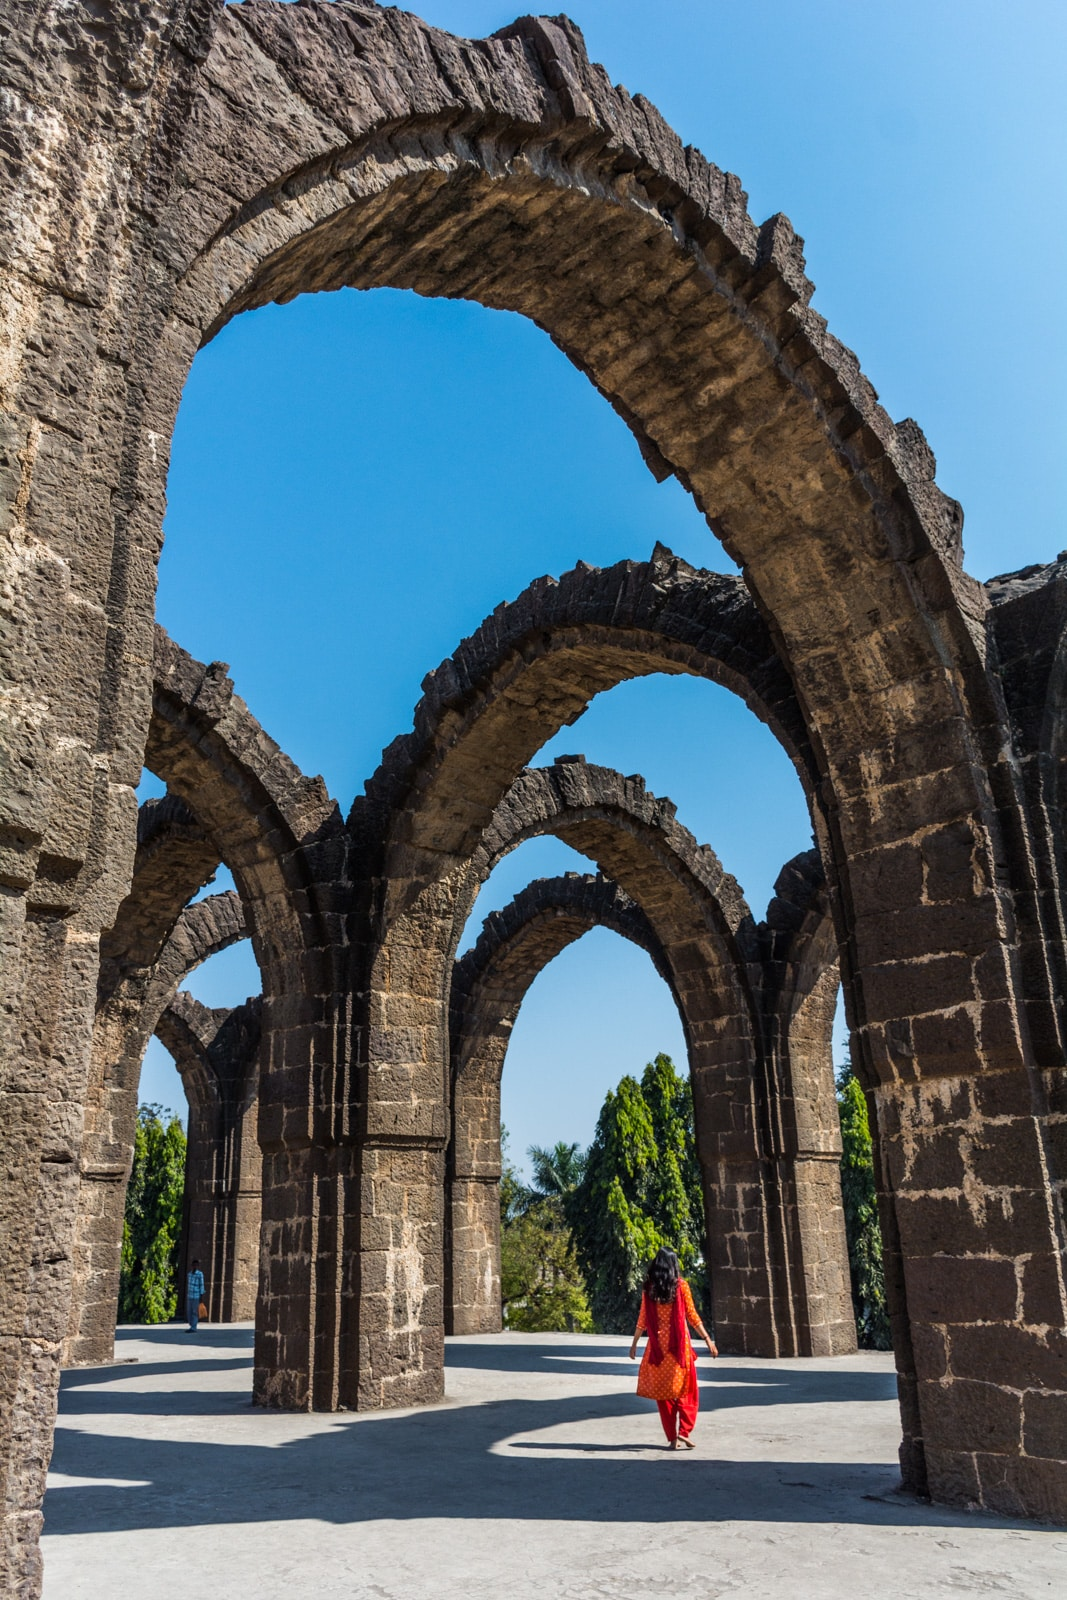 Exploring crumbling arches in Bijapur, an epic off the beaten track destination in Karnataka state, India.